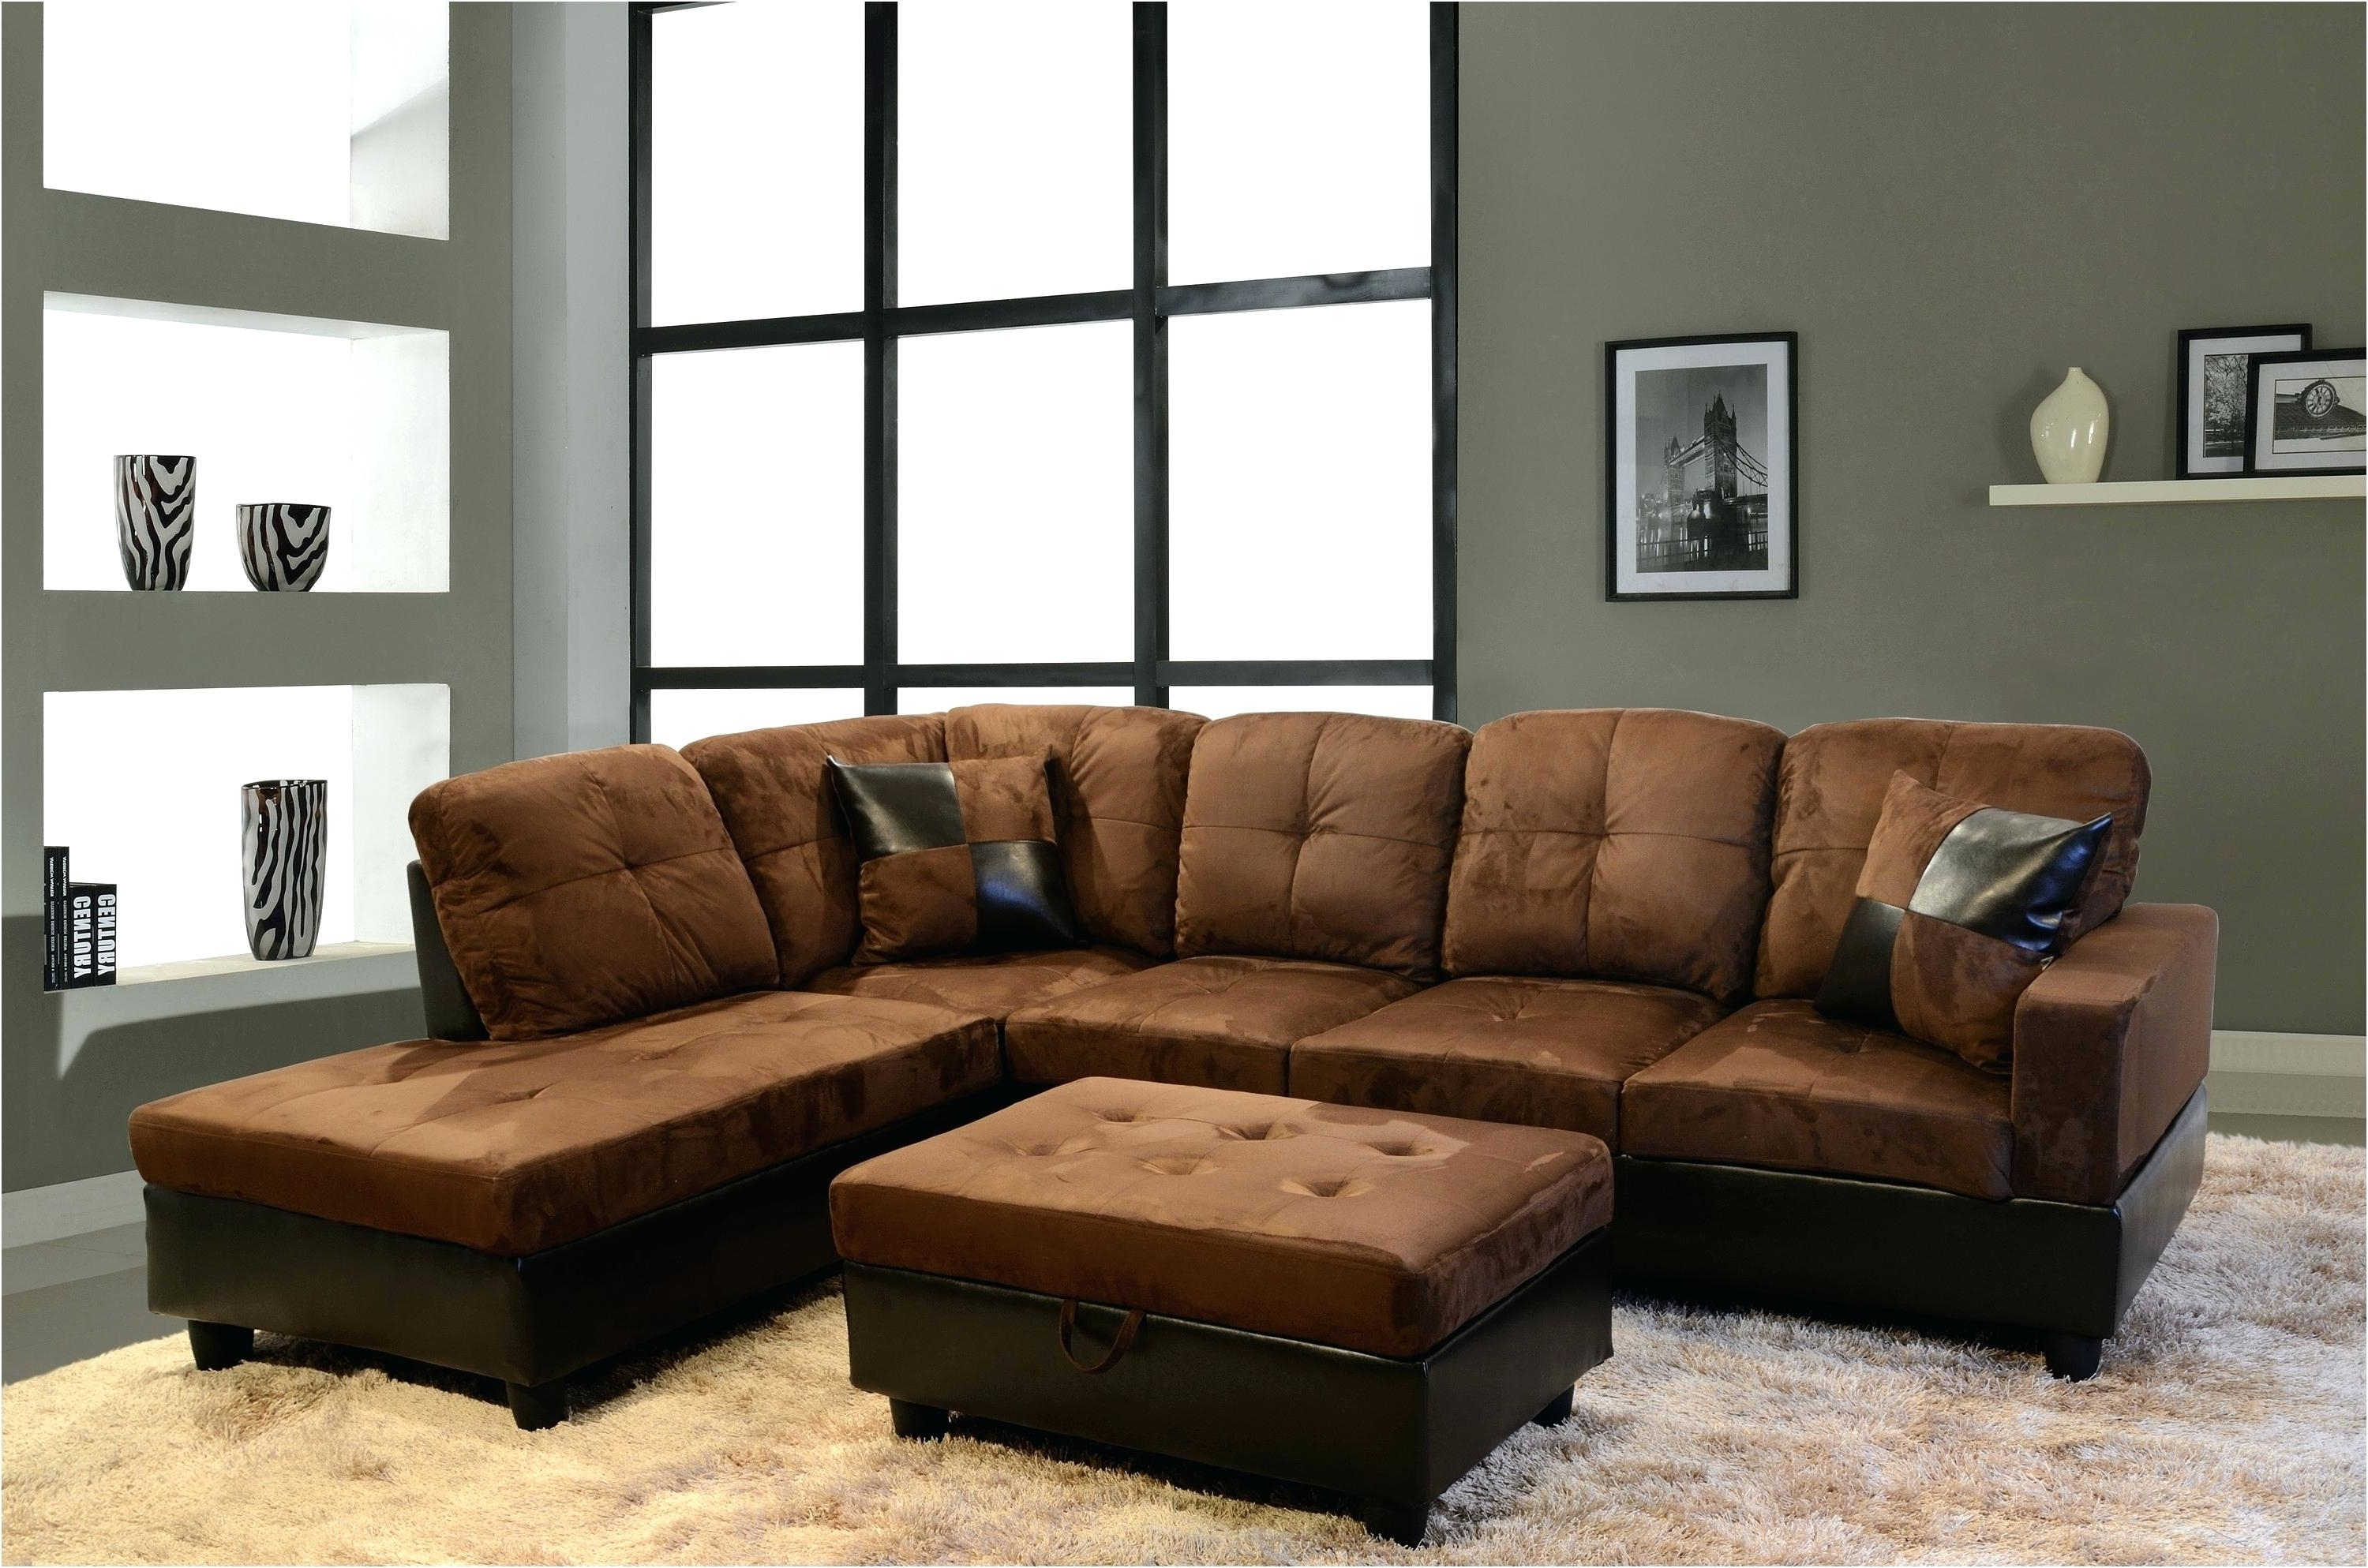 Sectionals For Cheap Sa Sas Sectional Sofas Under 500 Canada Sale For Favorite Canada Sale Sectional Sofas (View 8 of 15)